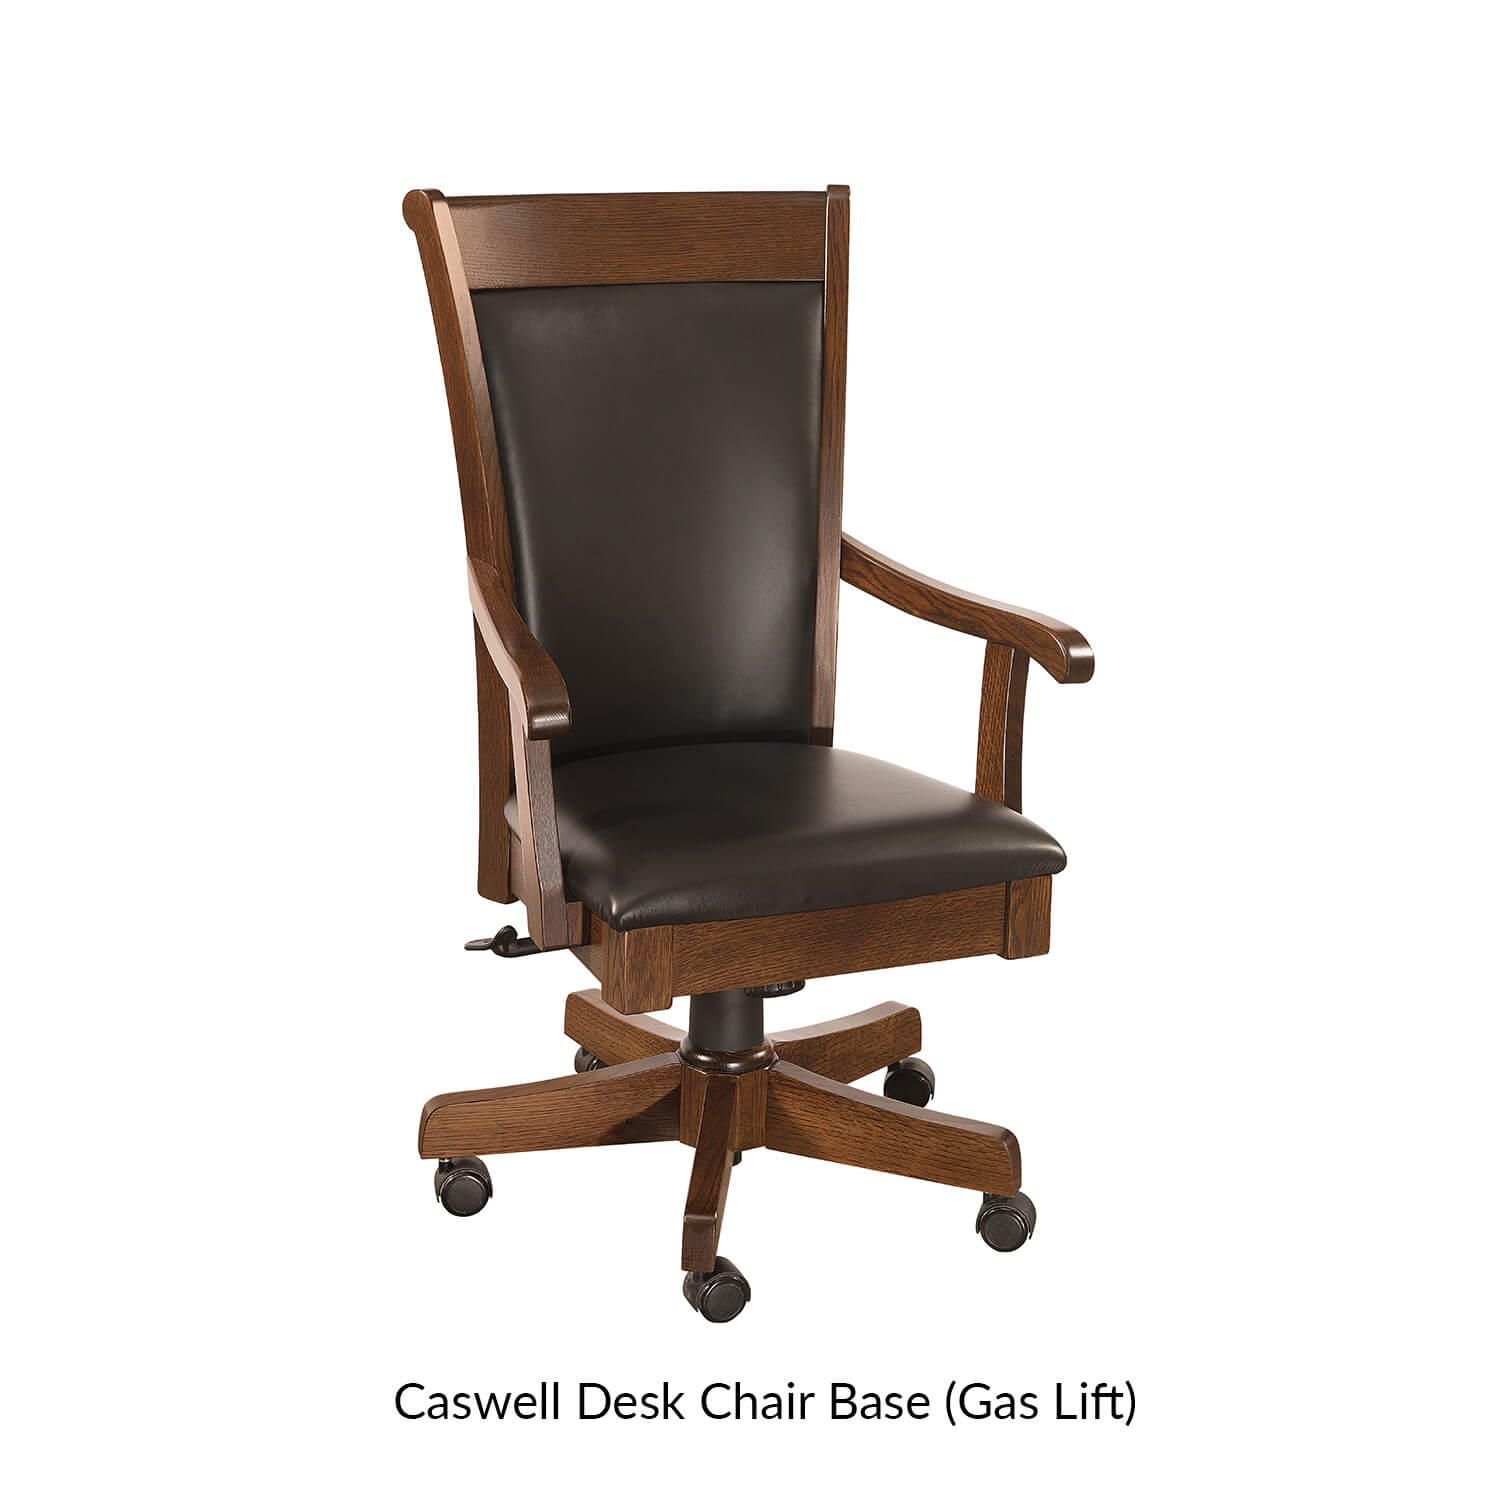 10.2-caswell-desk-chair-base-gas-lift-.jpg